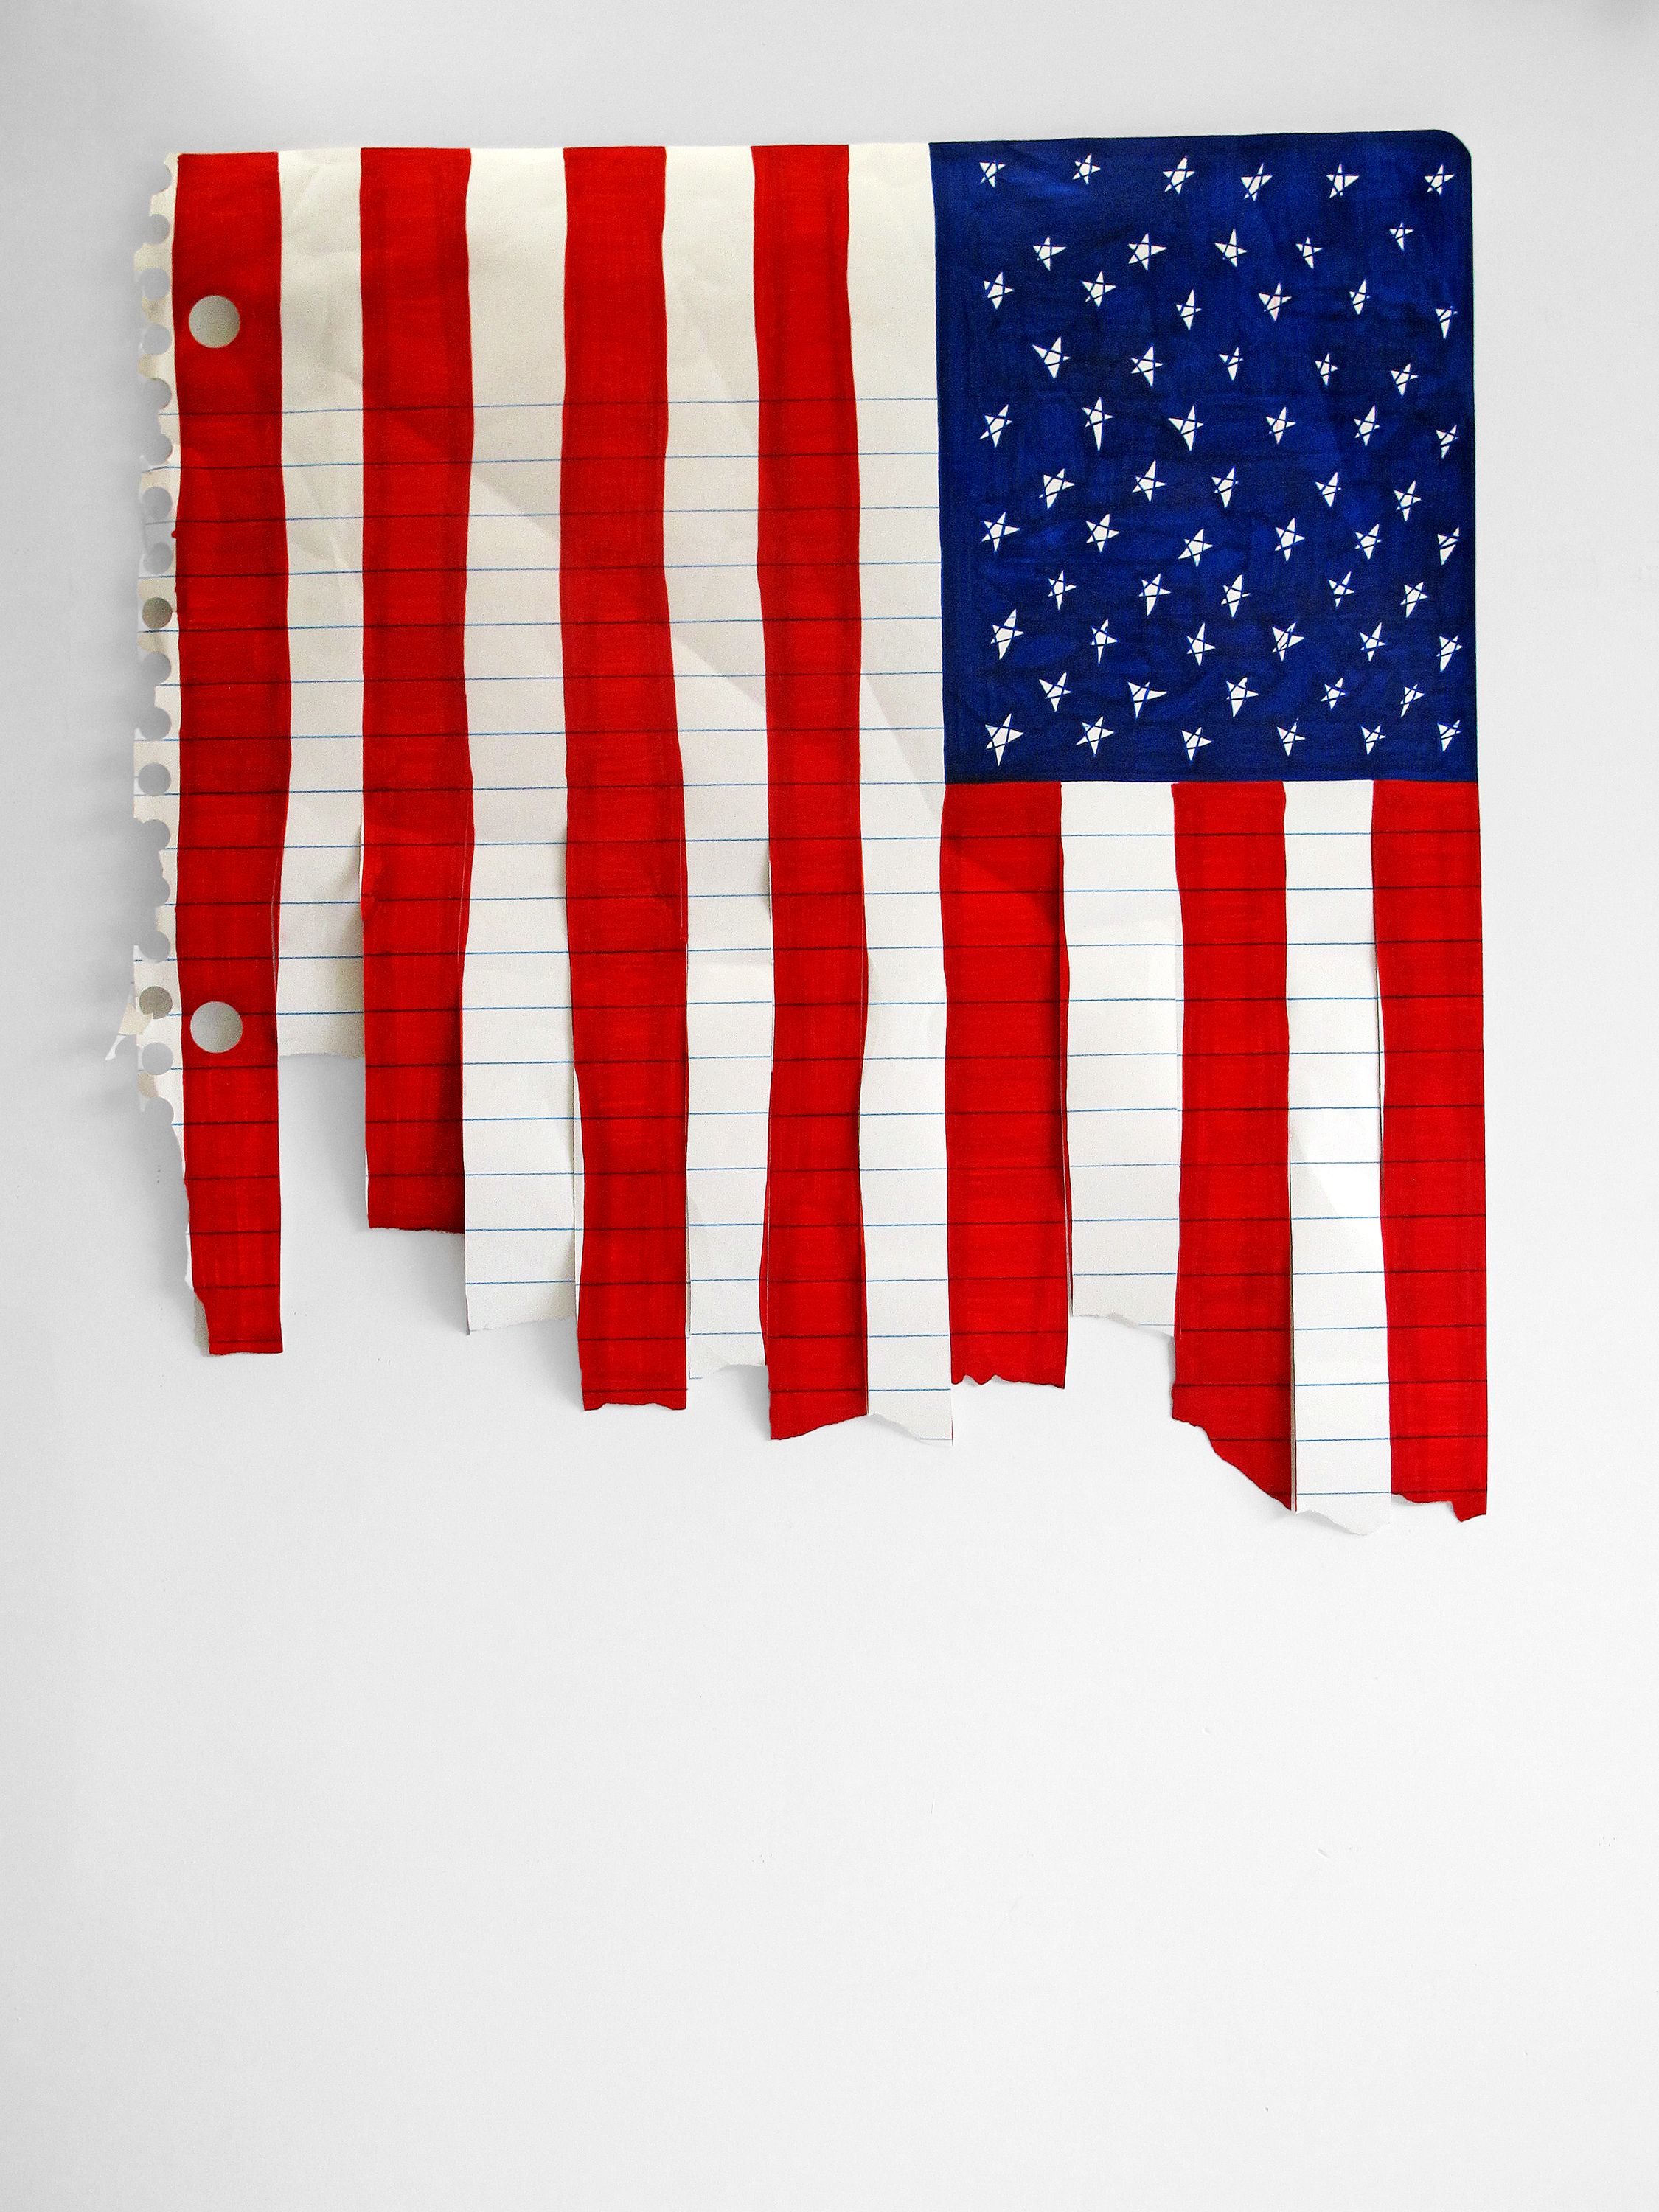 Michael Scoggins,Stars and Stripes Forever? (aka these colors don't run), 2006, marker, colored pencil on paper, 54 x 51 inches